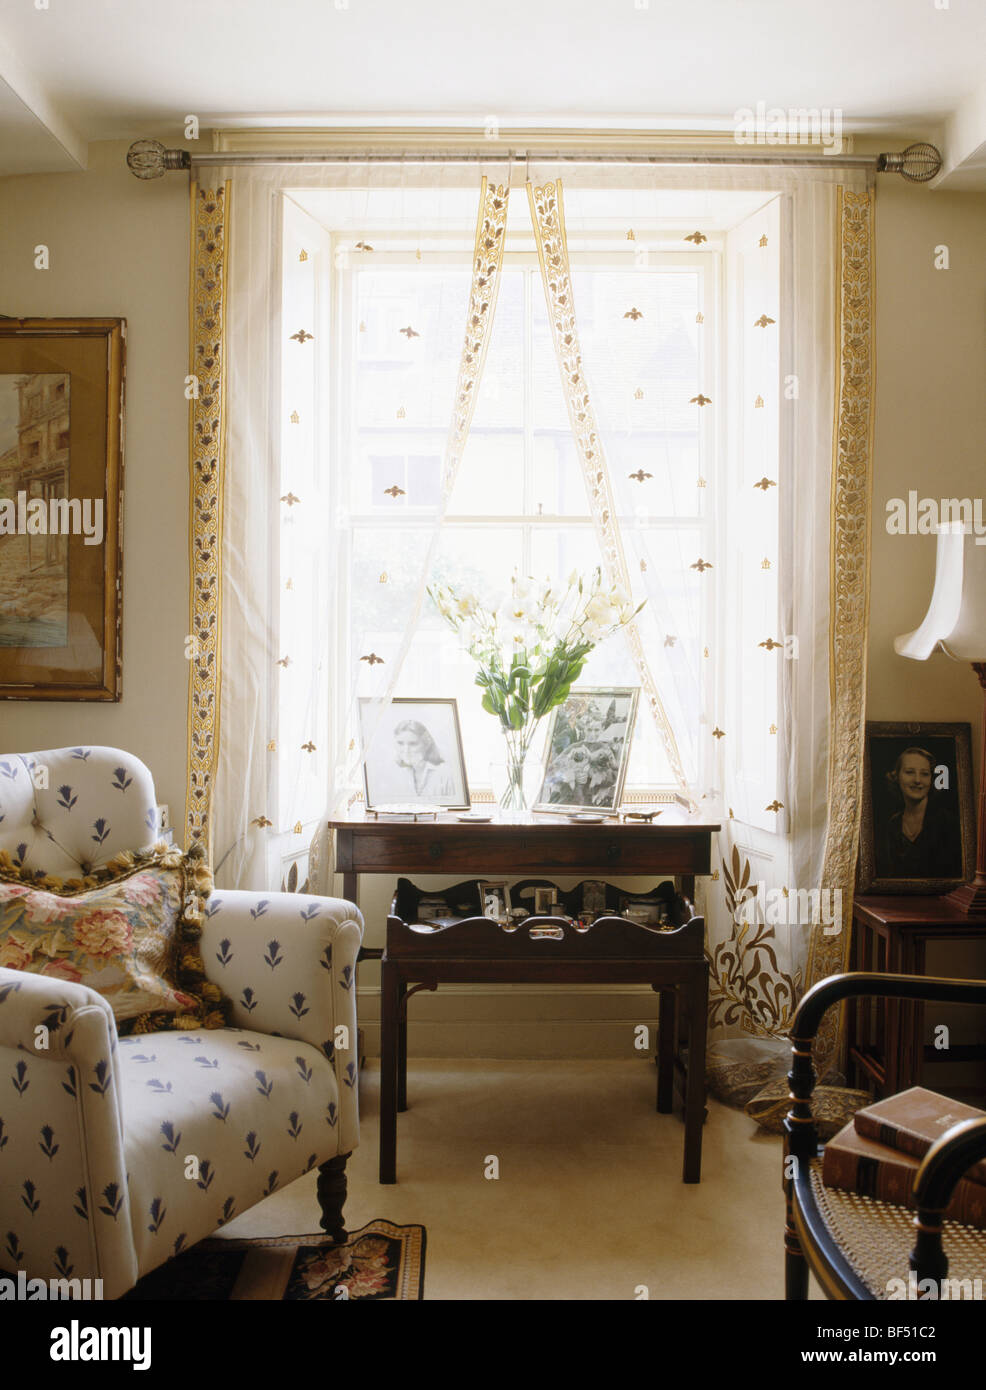 cream patterned armchair in small cottage living room with antique